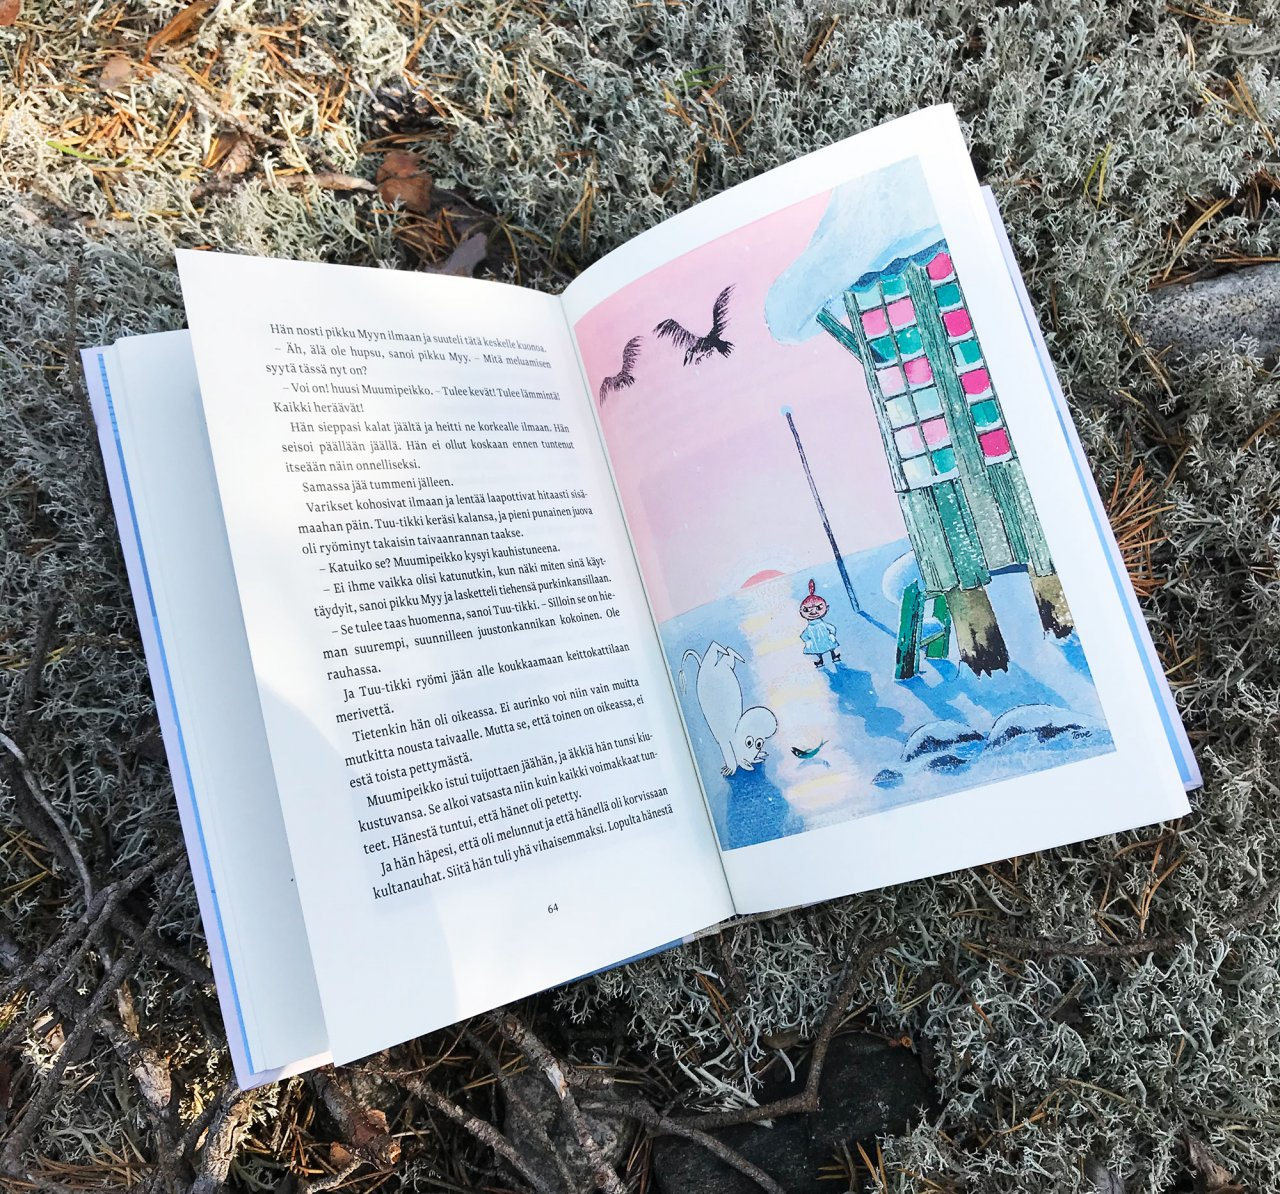 Tove Jansson created color illustrations for Moominland Midwinter